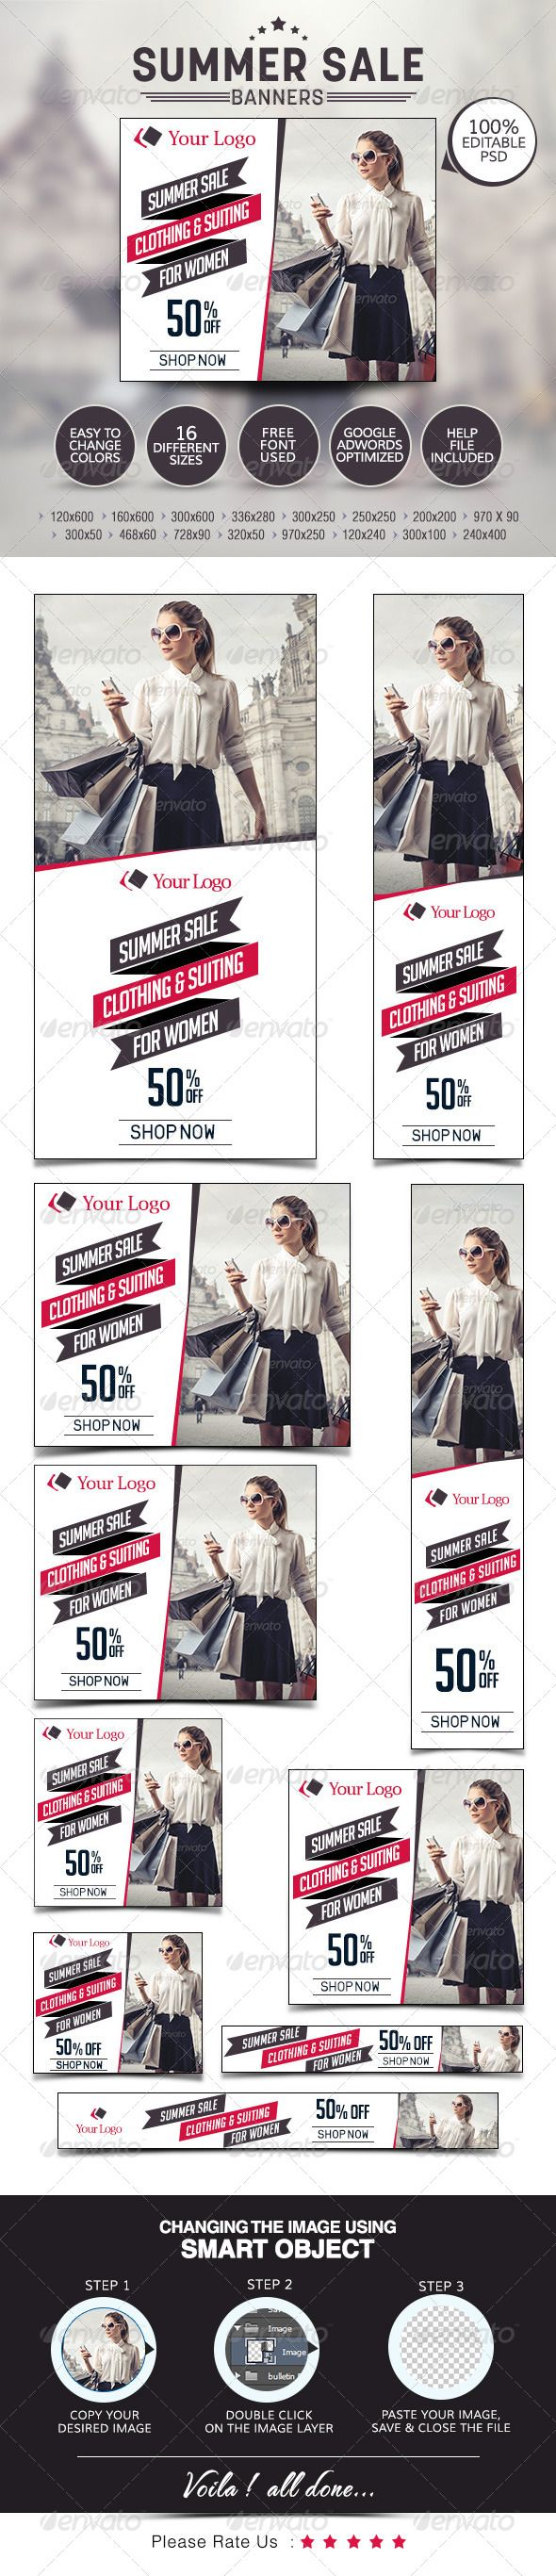 Summer Sale Web Banners Template PSD | Buy and Download: http://graphicriver.net/item/summer-sale-banners/7678855?WT.ac=category_thumb&WT.z_author=doto&ref=ksioks